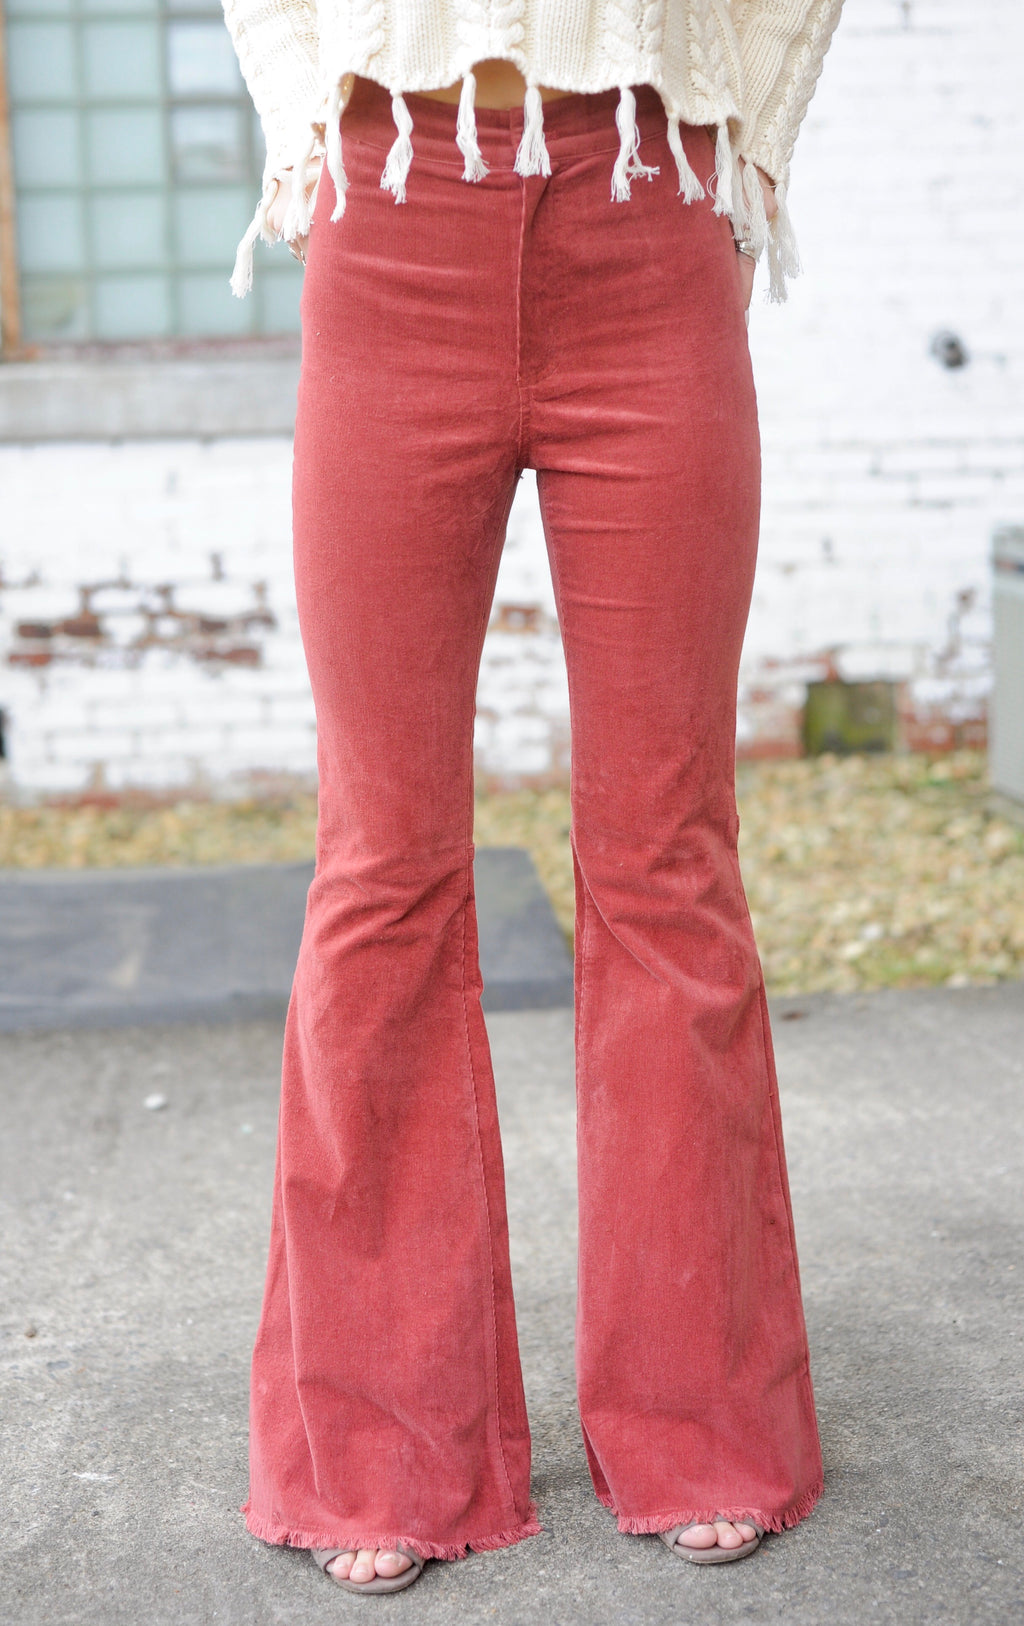 Burnt Rose Corduroy Bell Bottom Jeans